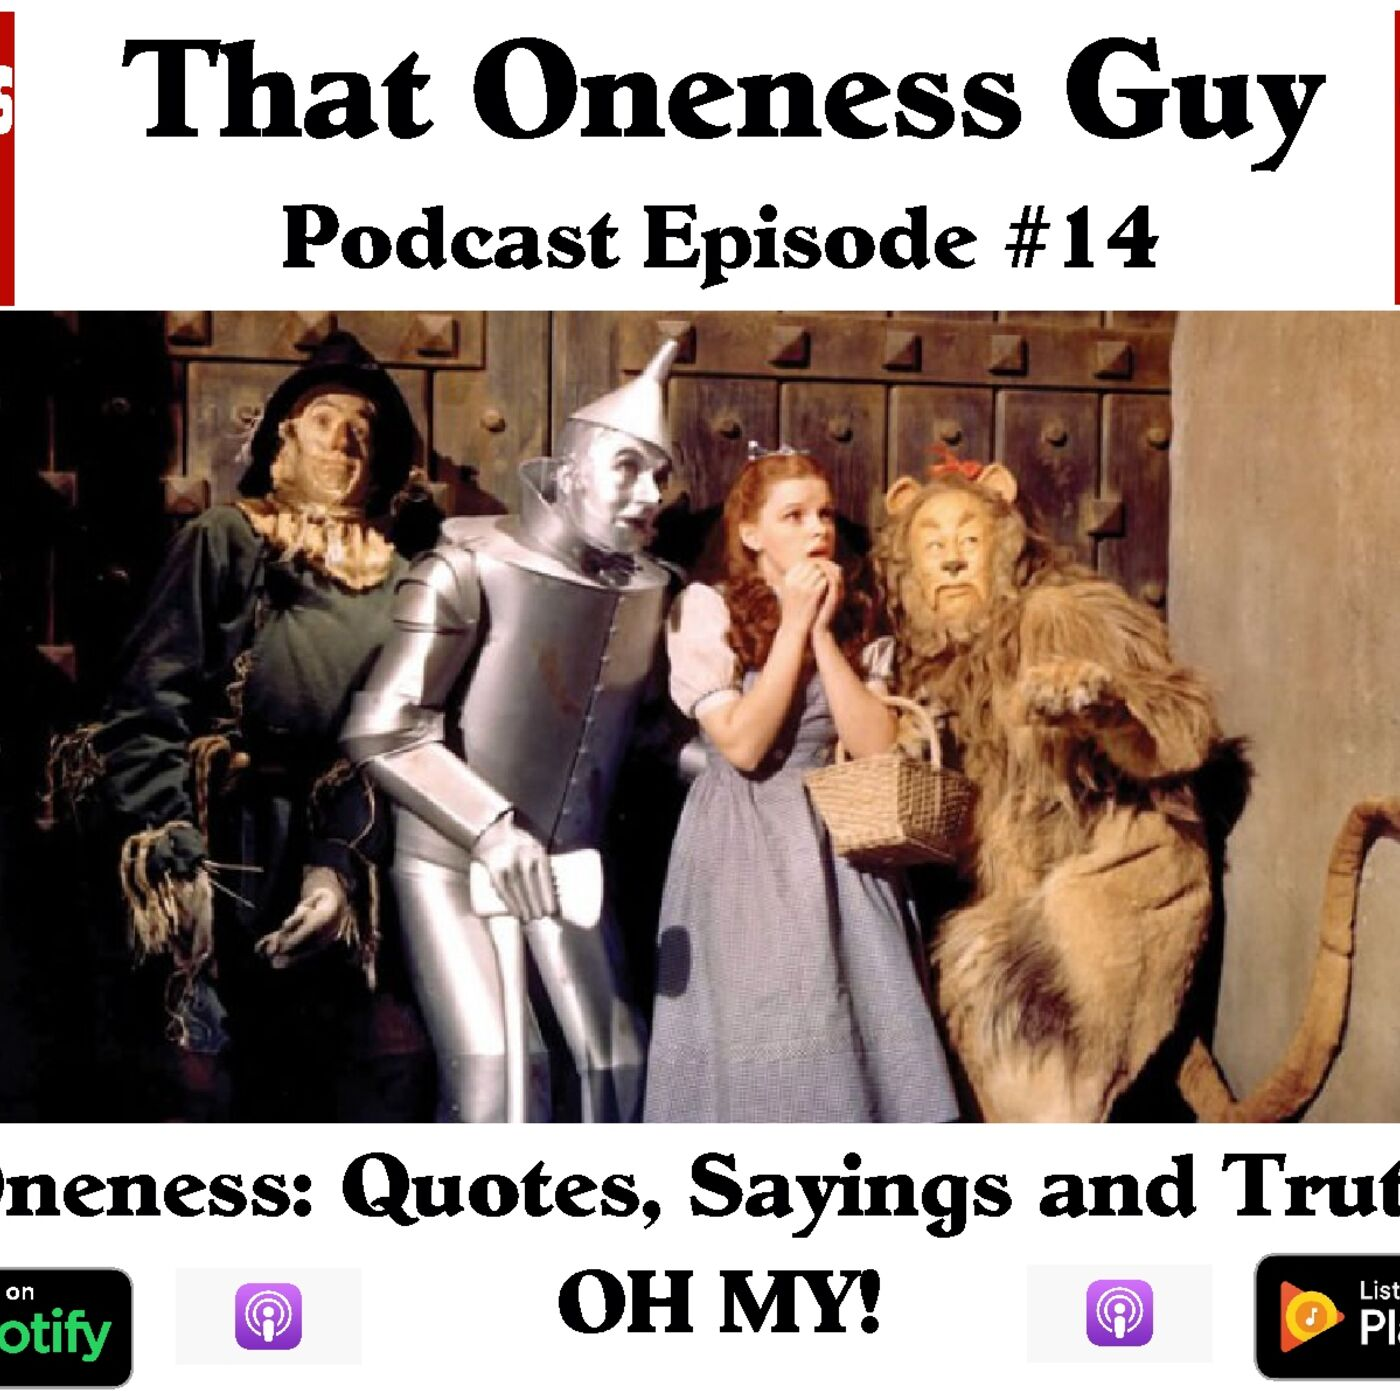 Oneness: Quotes, Sayings, and Truths OH MY!